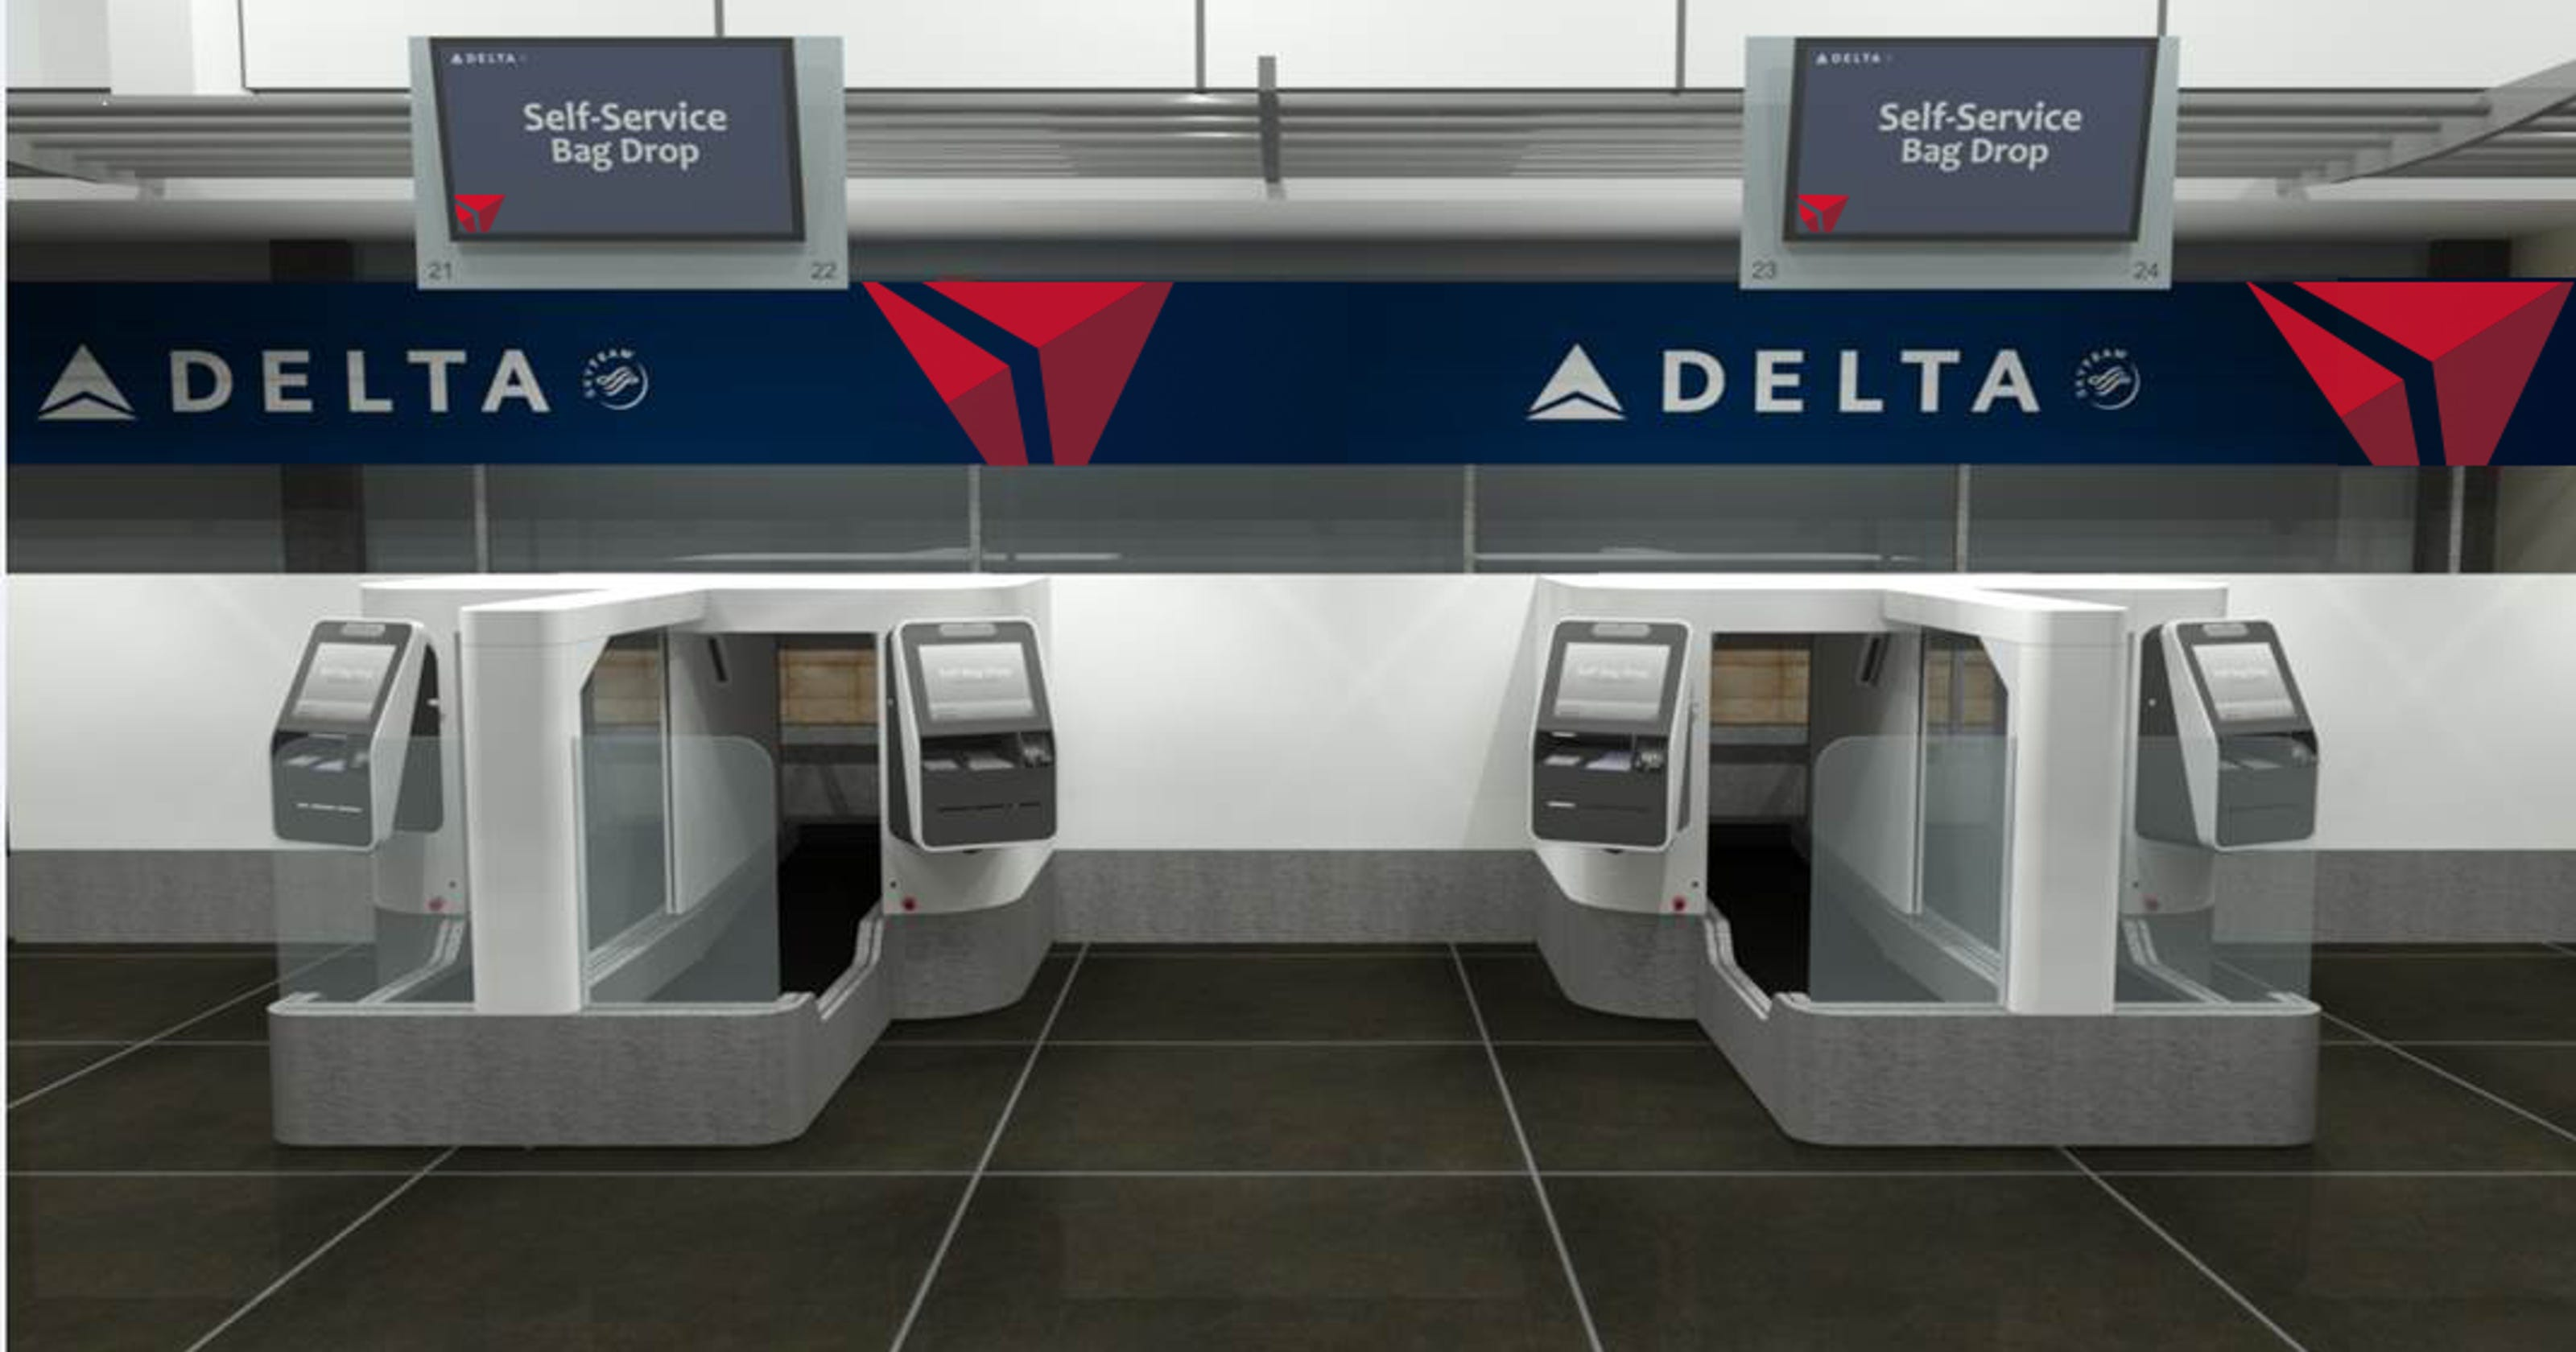 045187894470 Facial-recognition  Delta s self-service bag drops will test technology